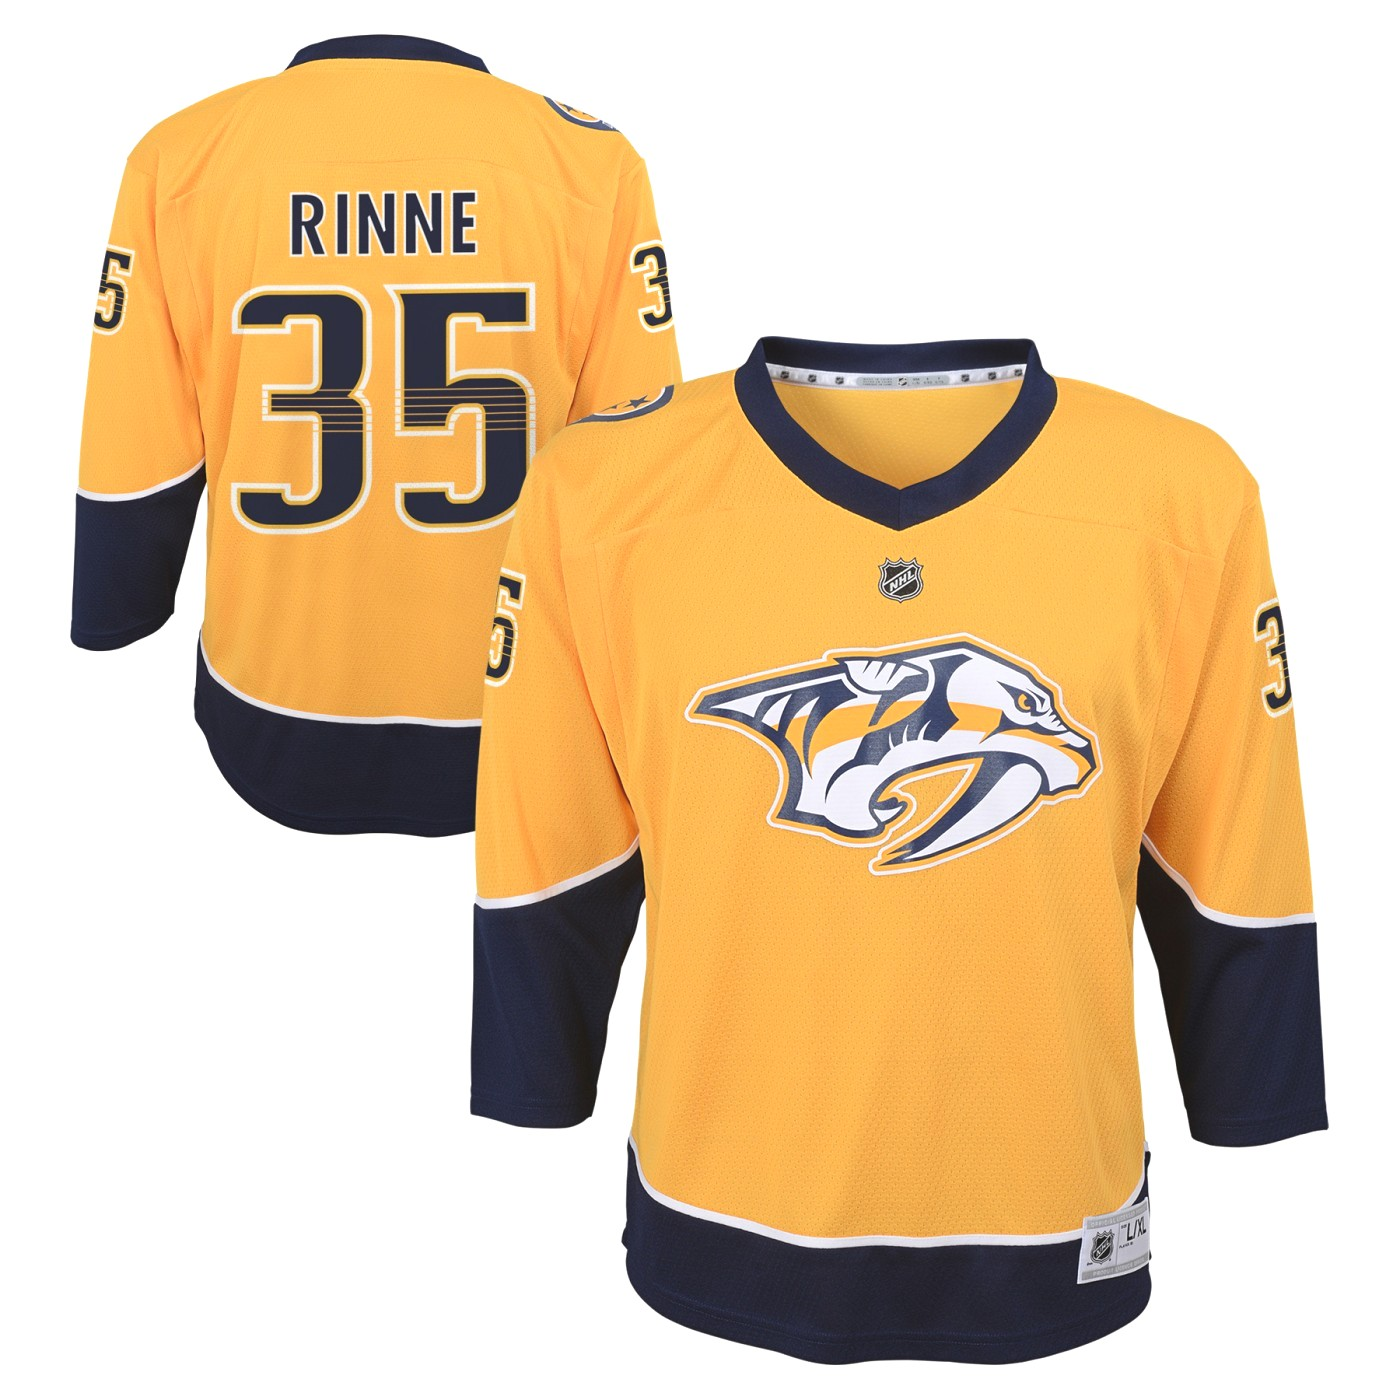 Pekka Rinne Nashville Predators Youth NHL Yellow Replica Hockey Jersey